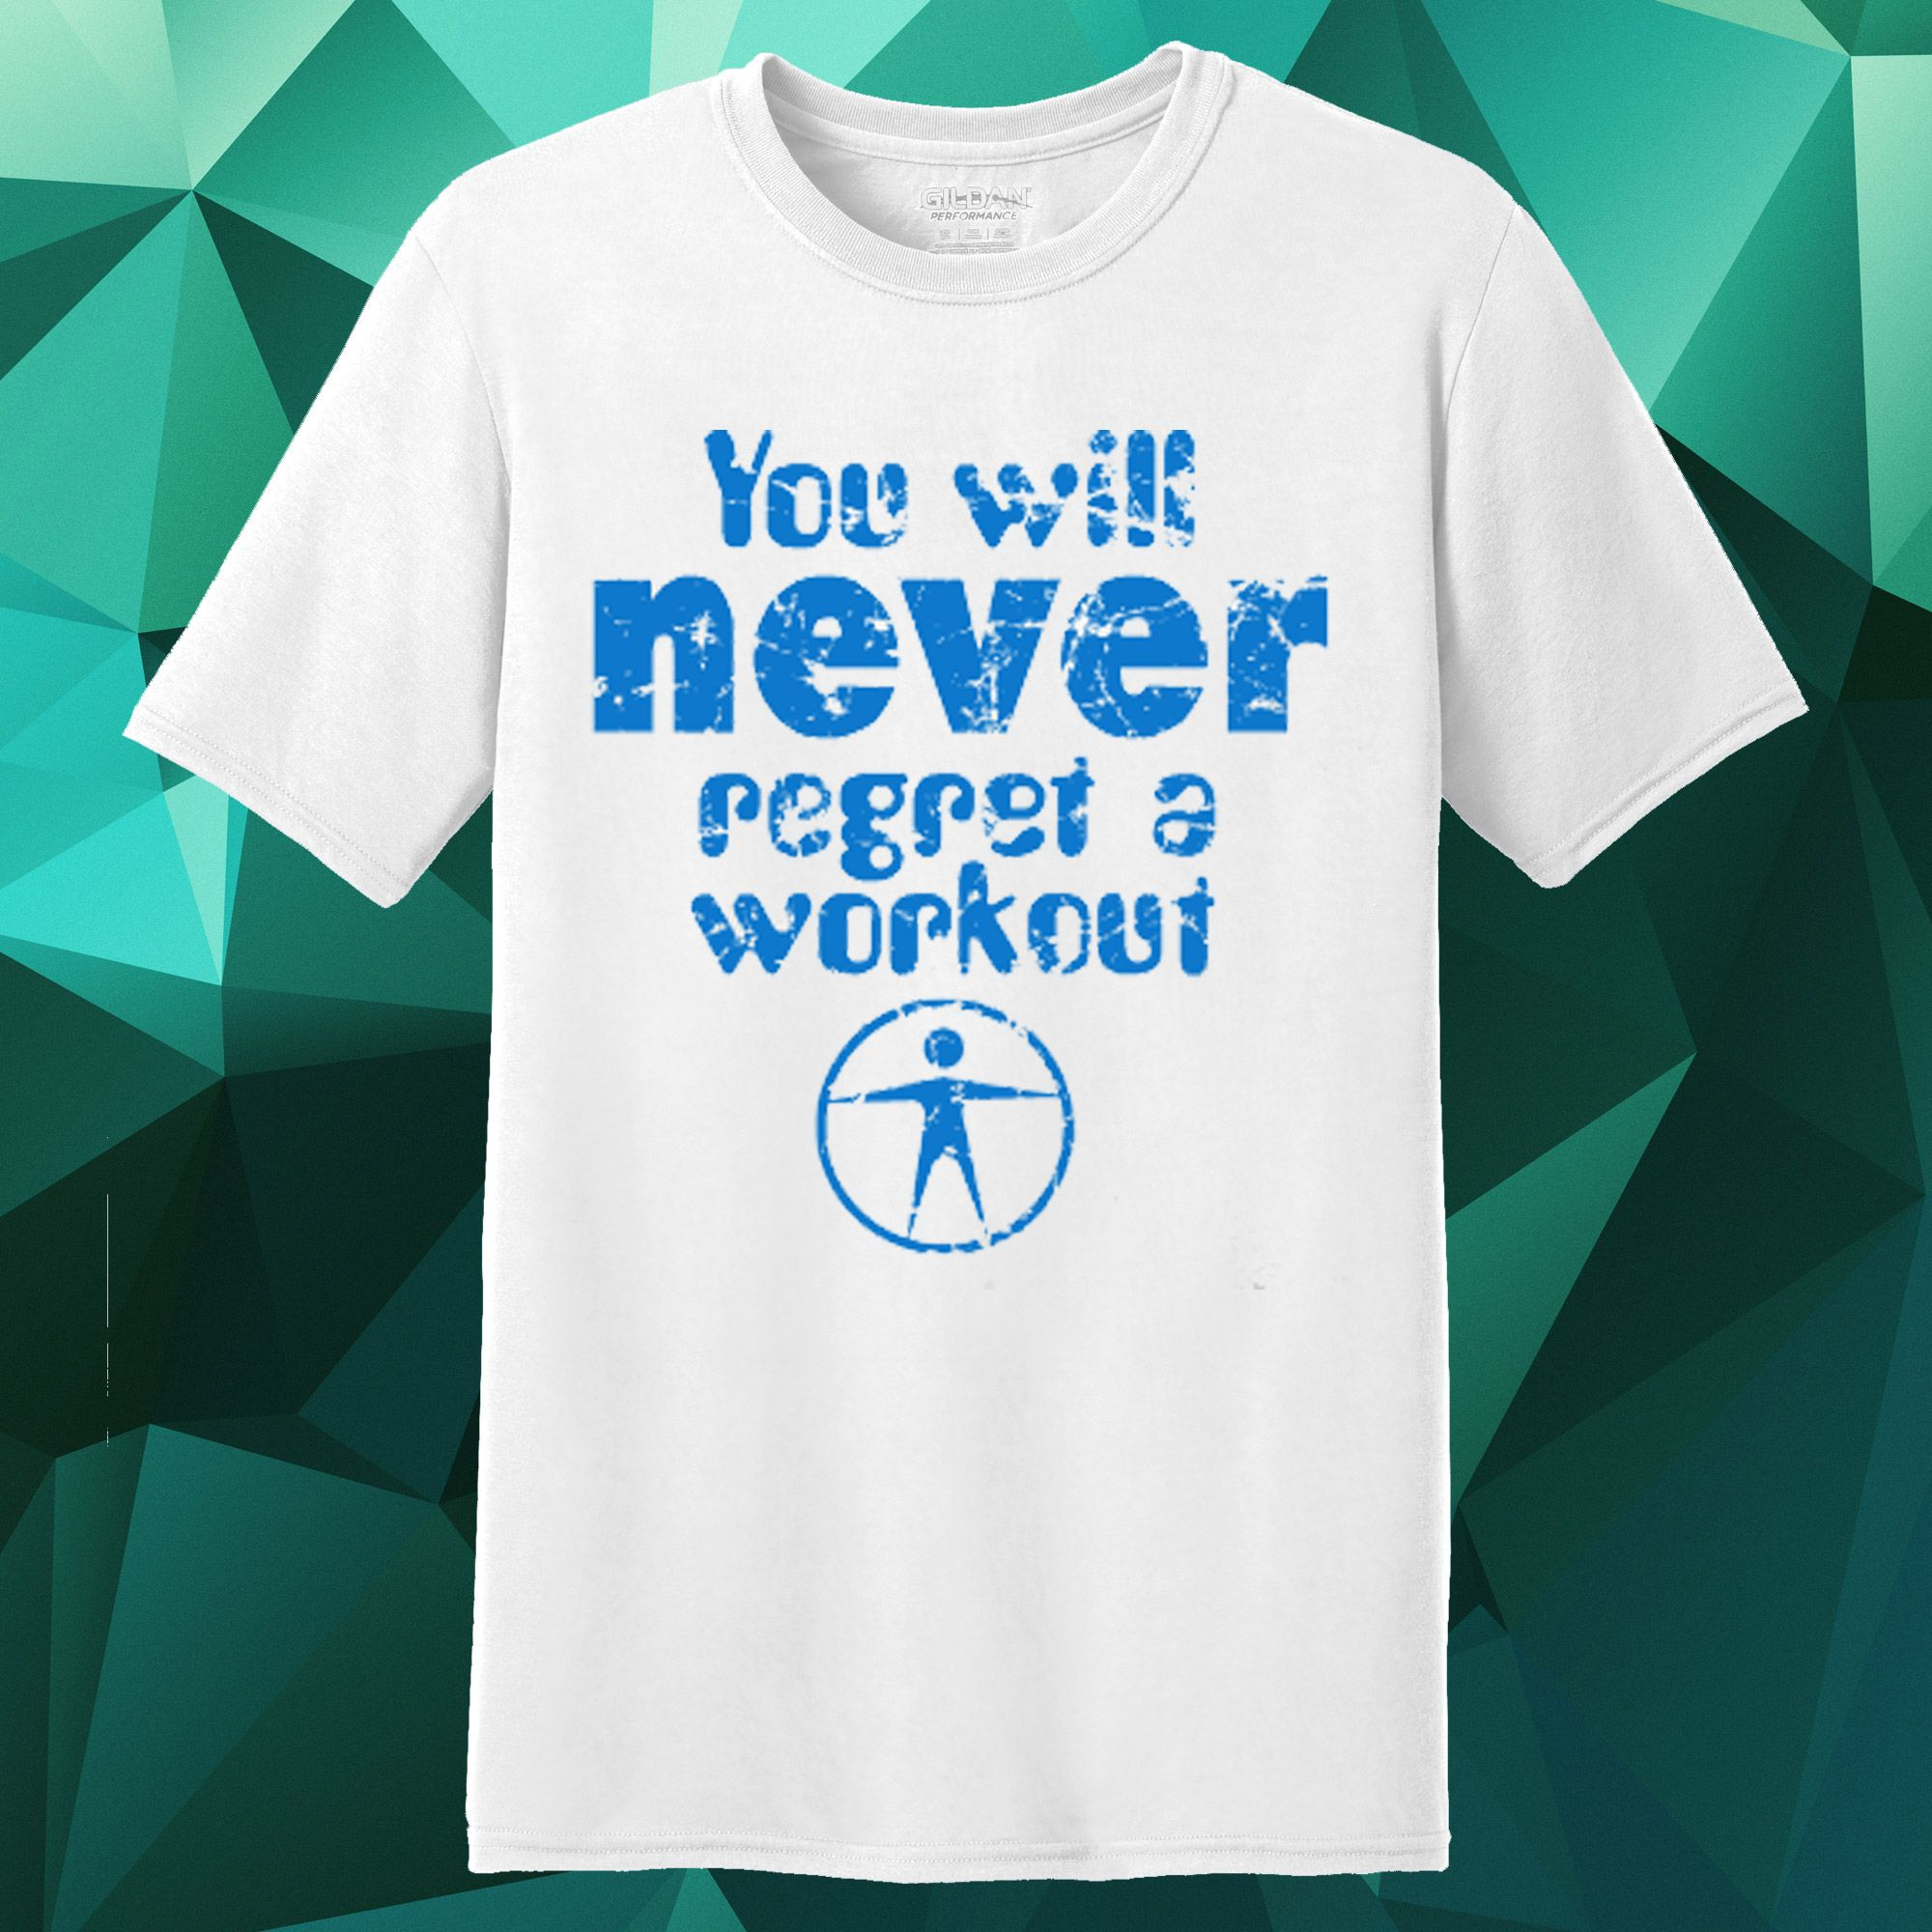 Design Your Own Workout T Shirt – EDGE Engineering and Consulting